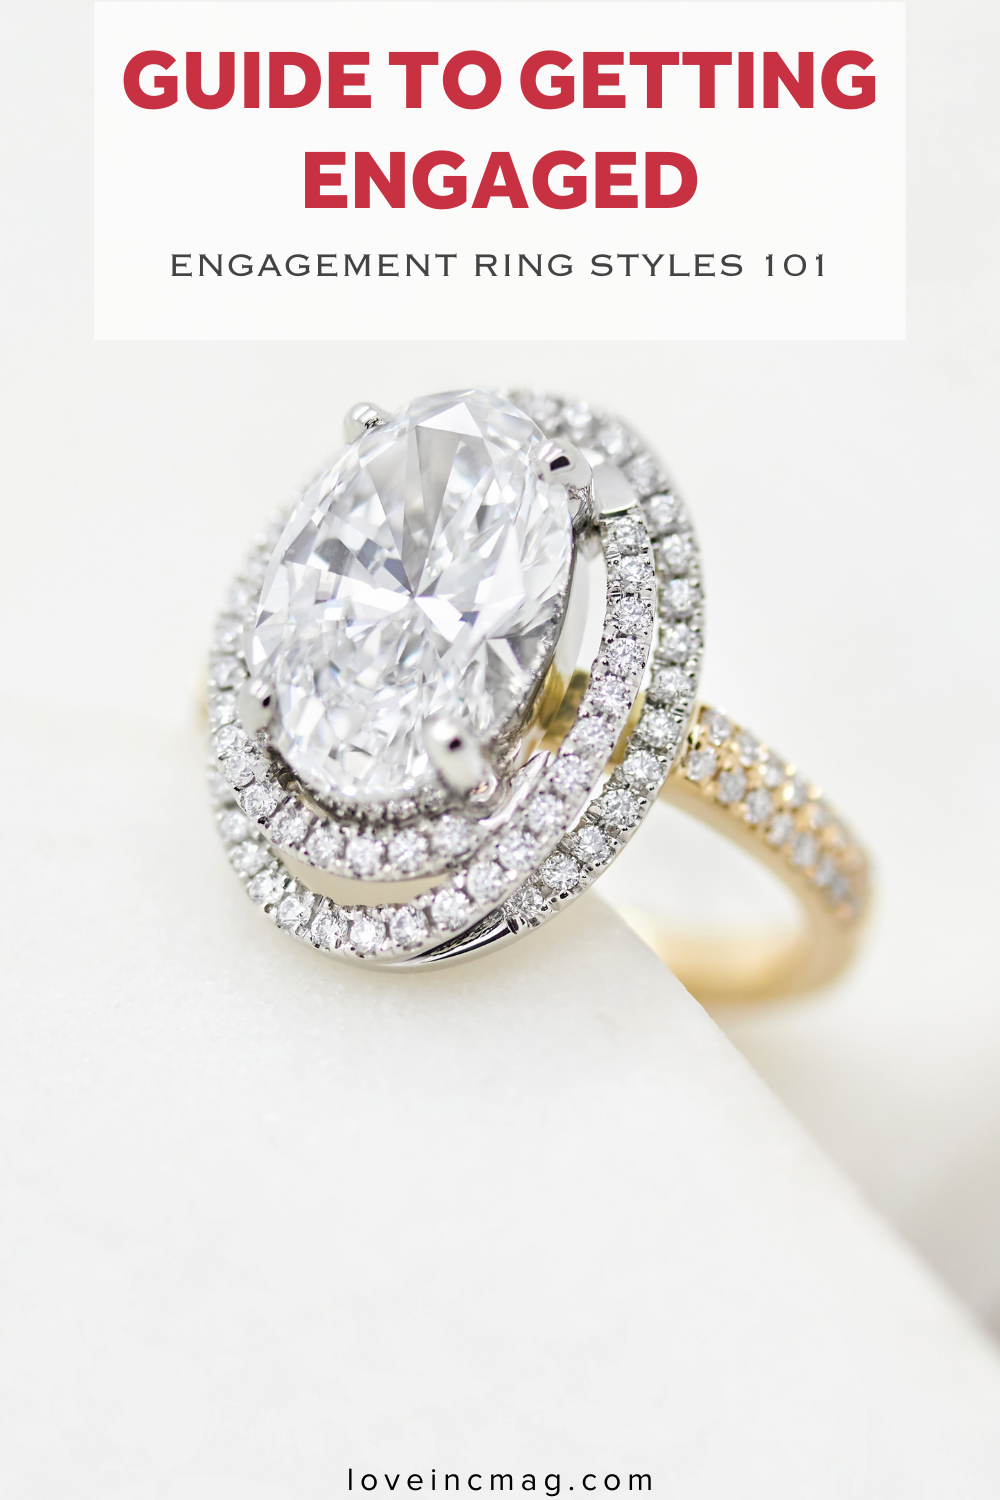 guide-to-getting-engaged-pinterest-pin